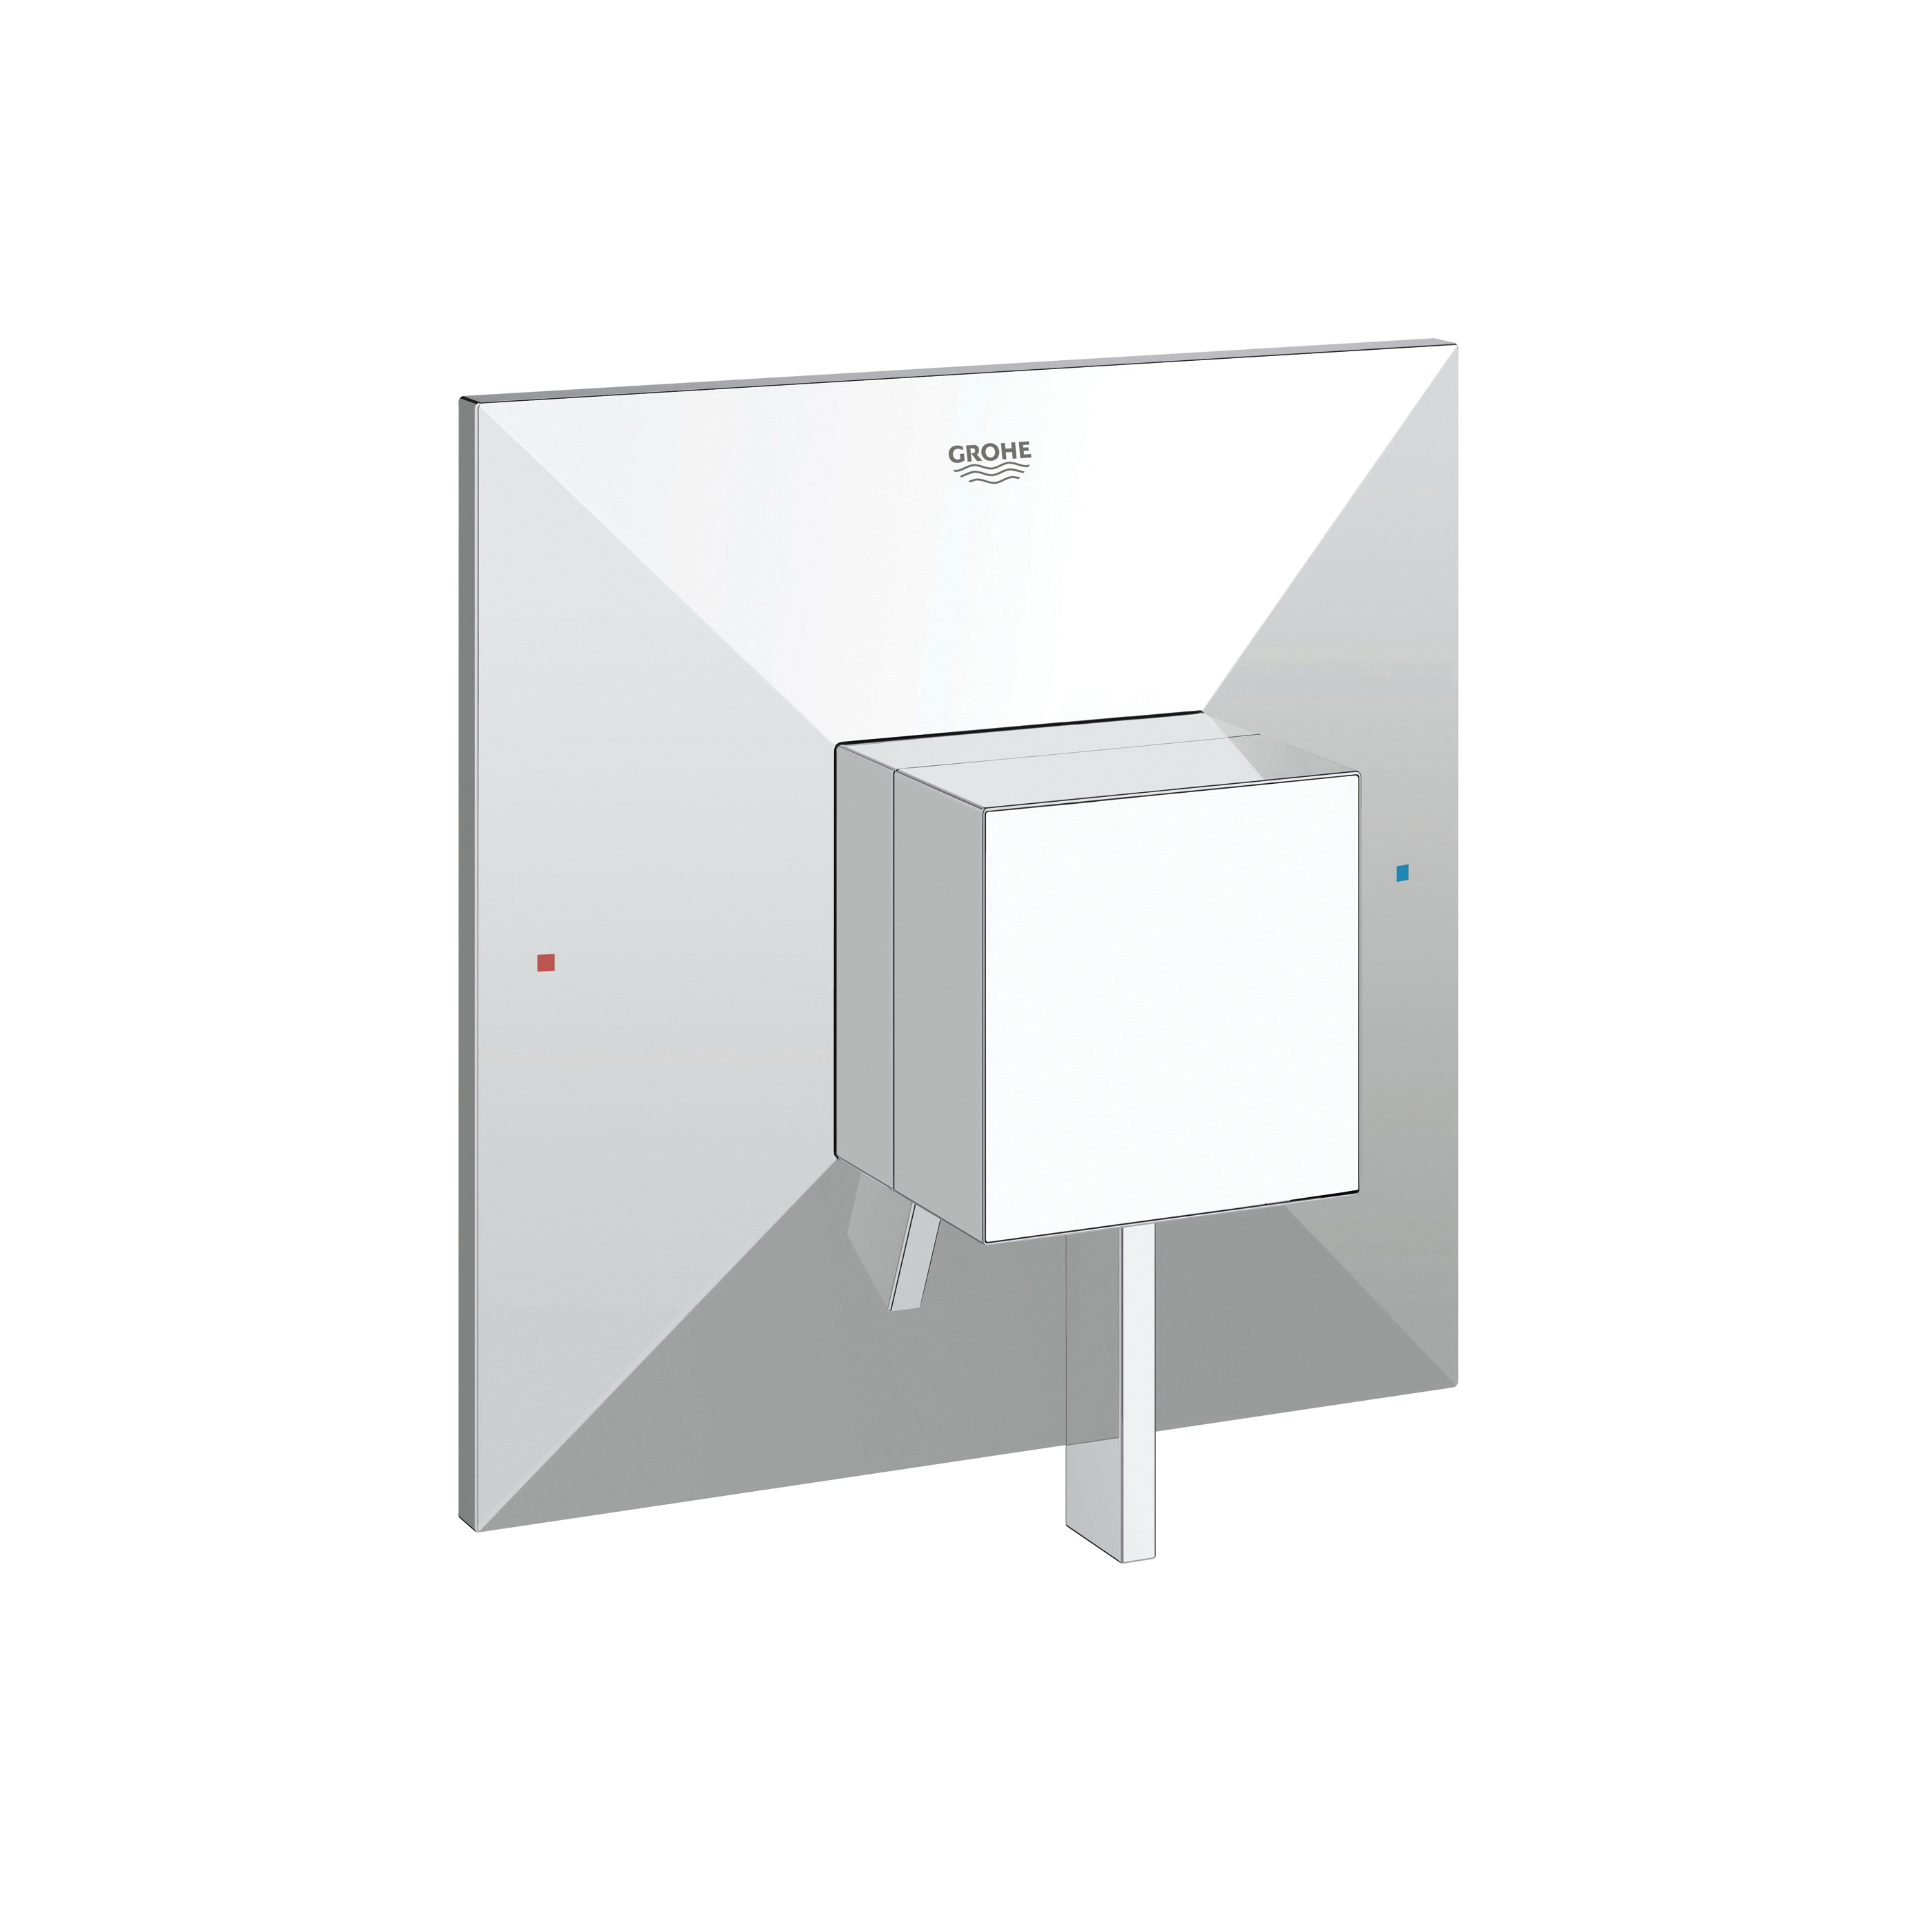 GROHE 19790000 Allure Brilliant Valve Trim, 6.1 gpm Shower, Chrome Plated